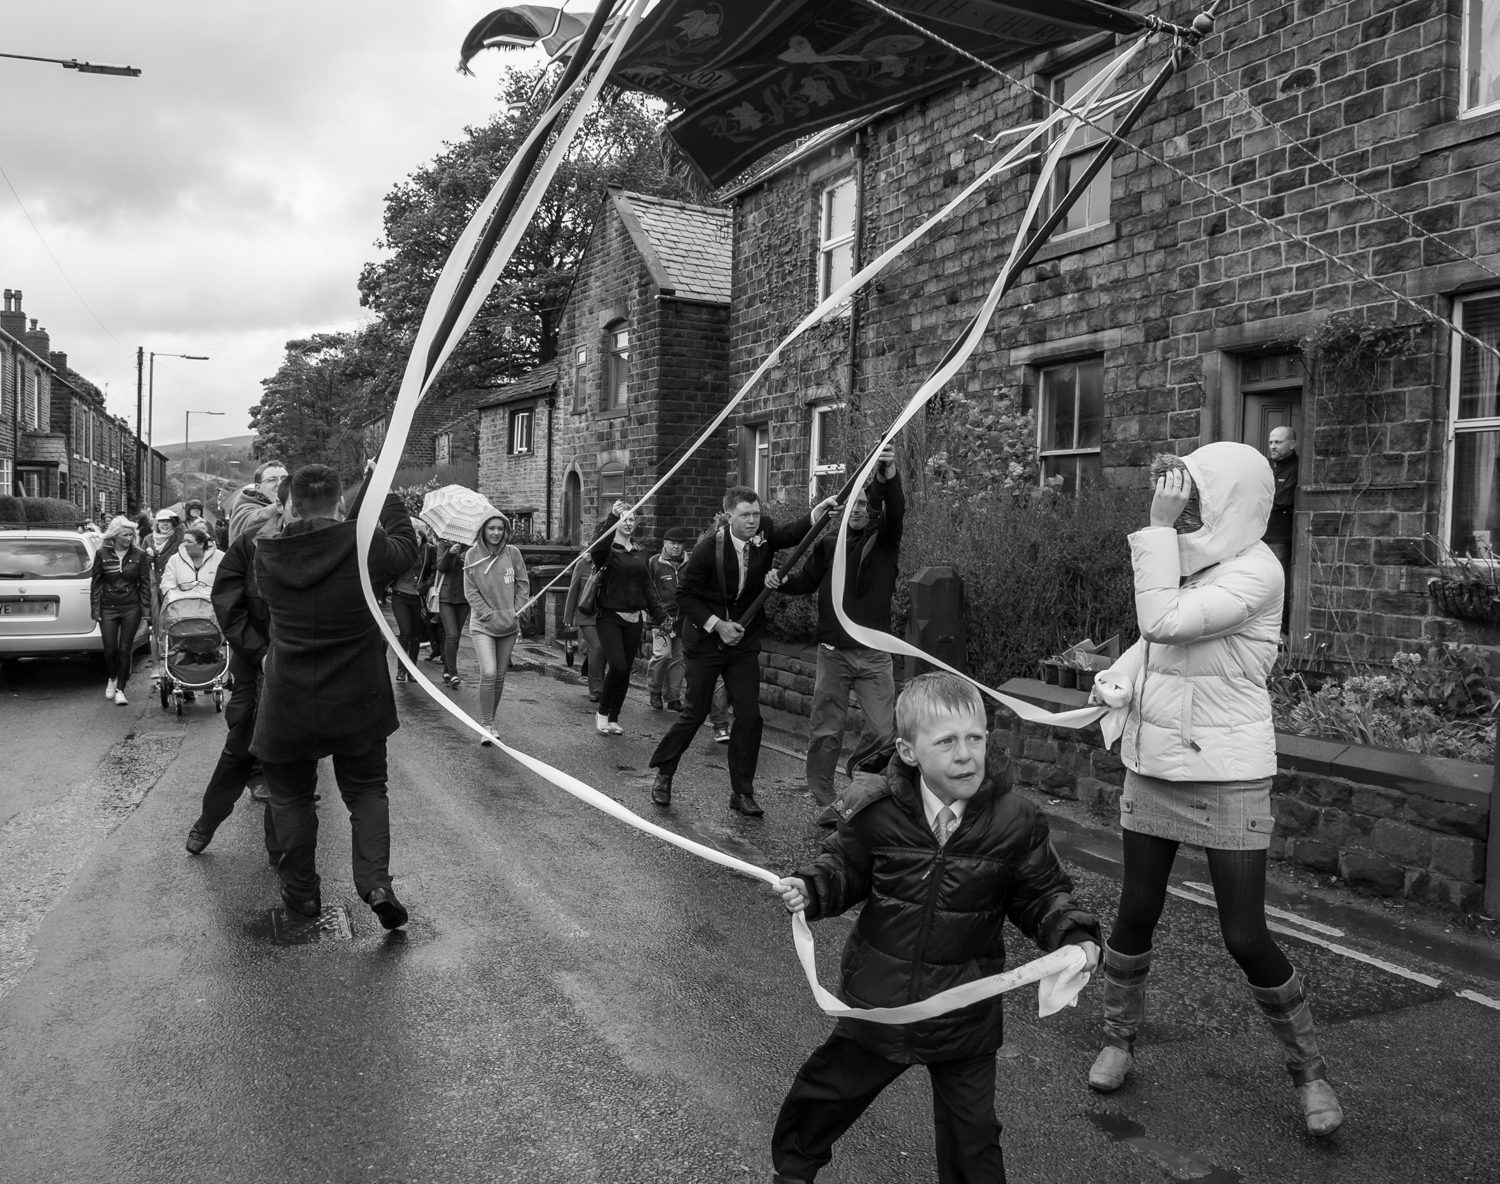 windy whit friday documentary photography stuart coleman